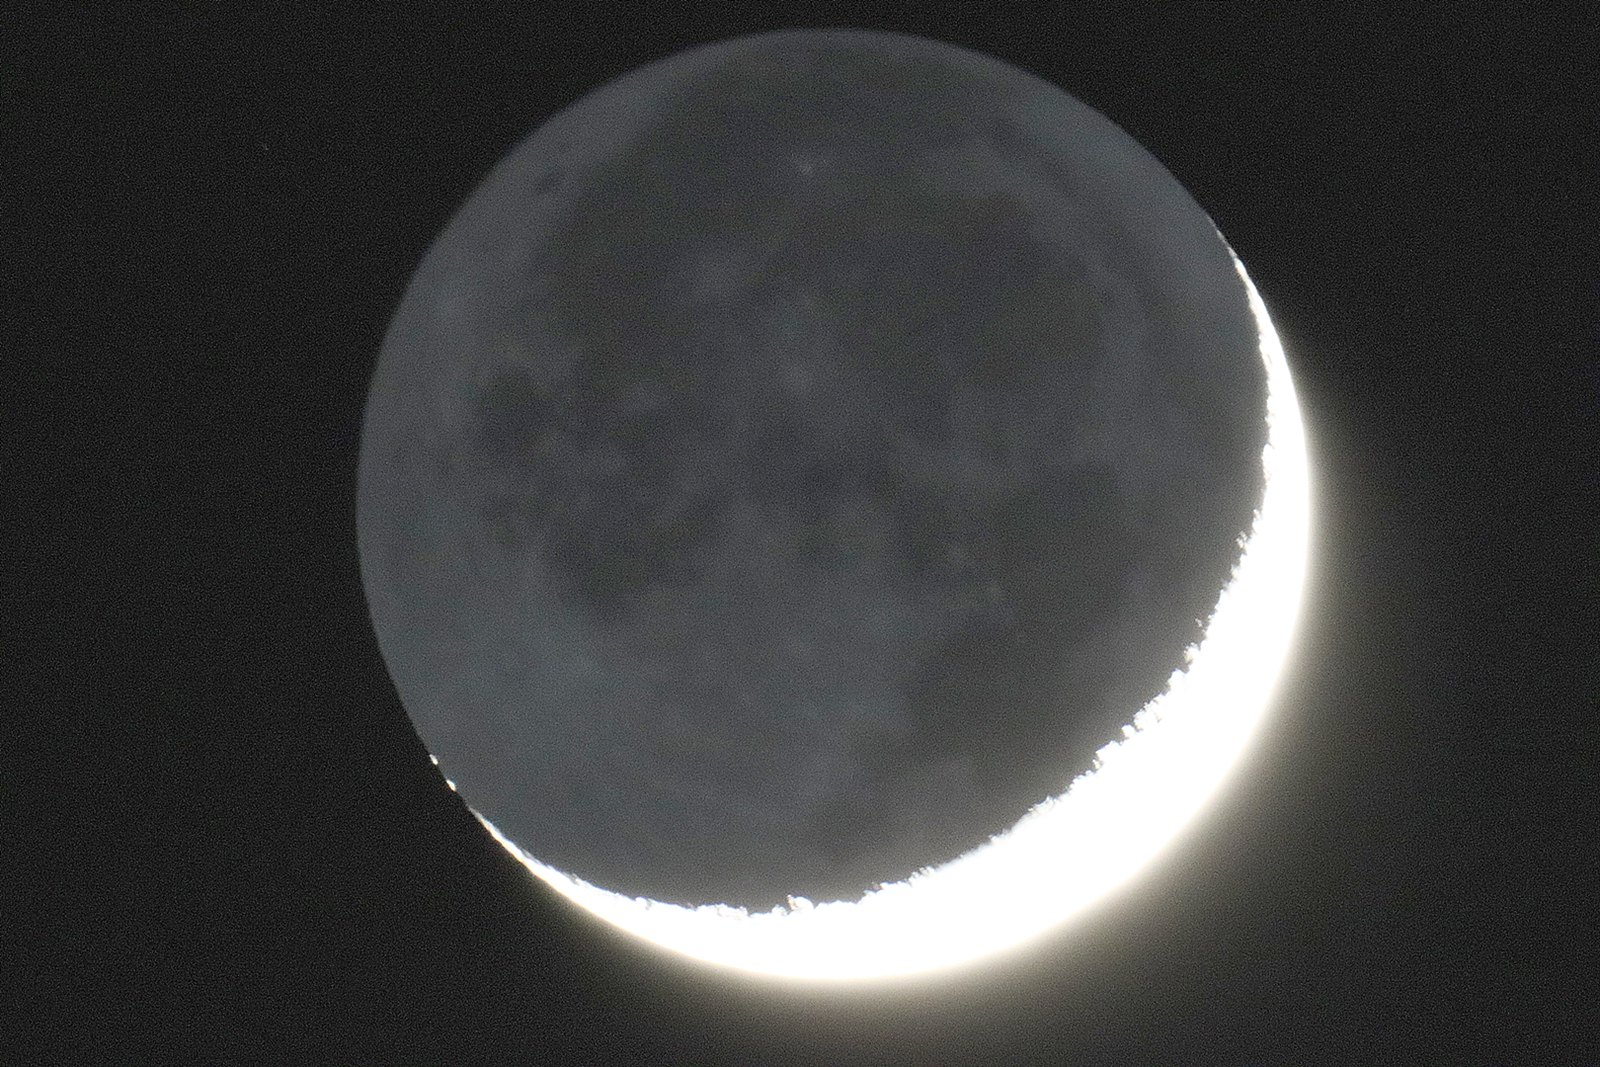 Waxing crescent Moon with Earthshine Friday 27 March 2020